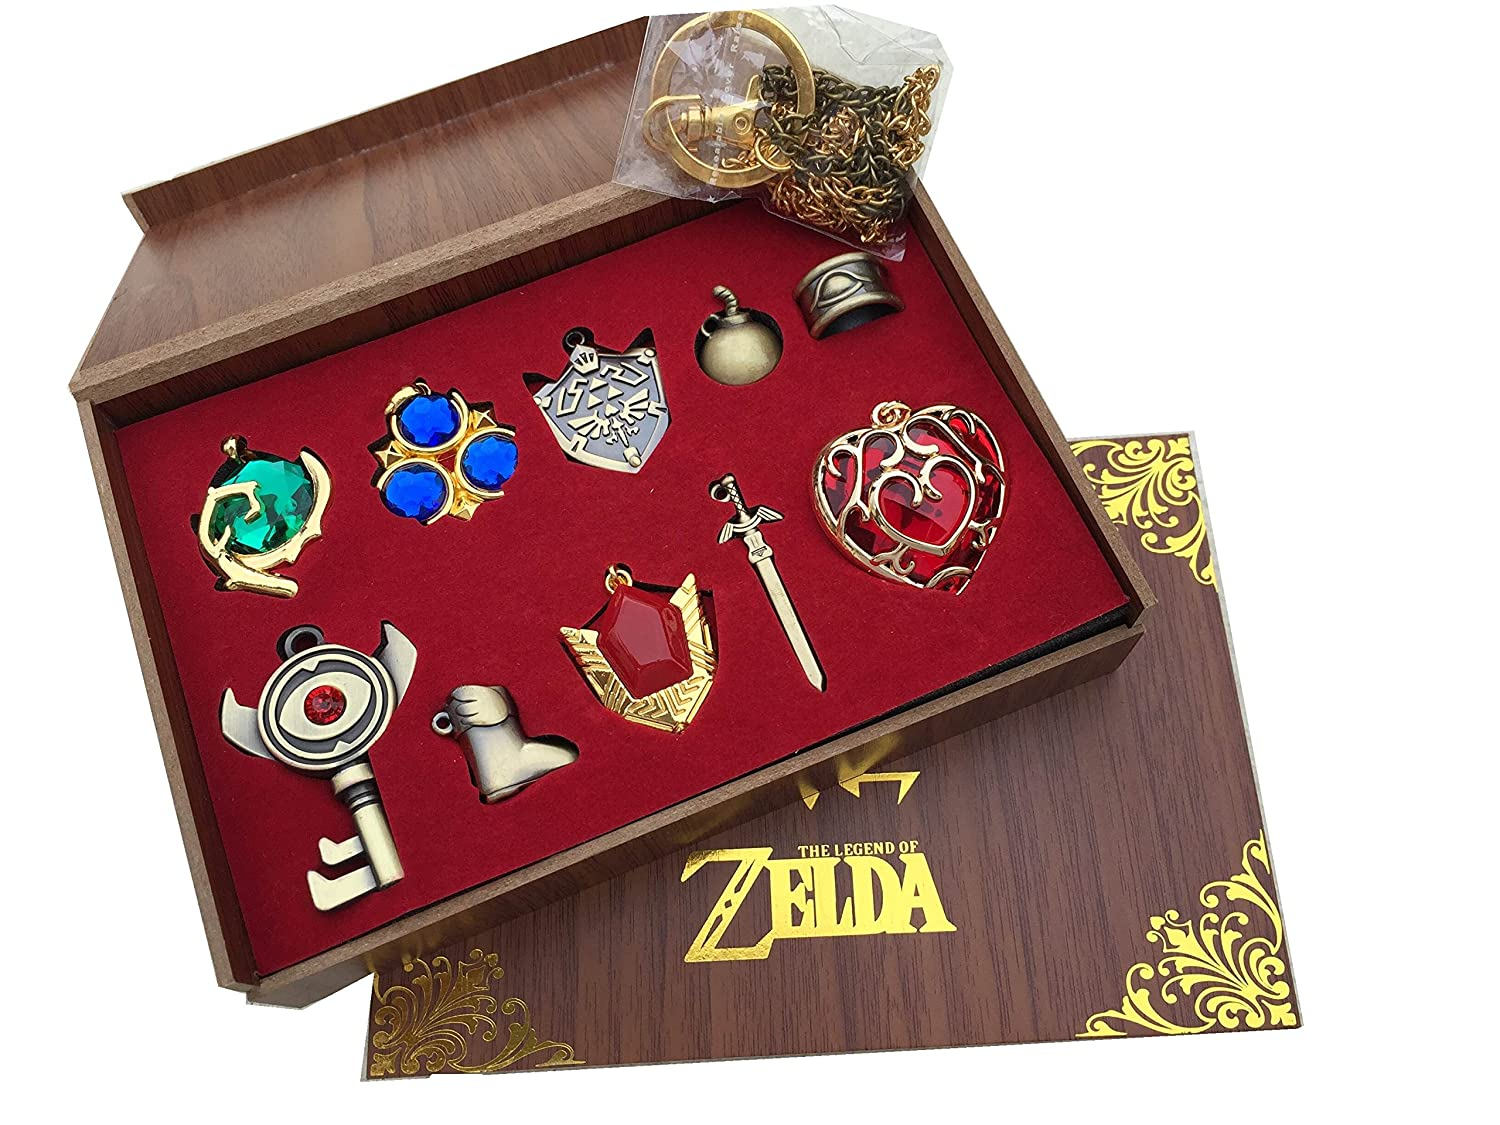 The Legend of Zelda Twilight Princess & Hylian Shield & Master Sword finest collection sets keychain / necklace / jewelry series a caress of twilight